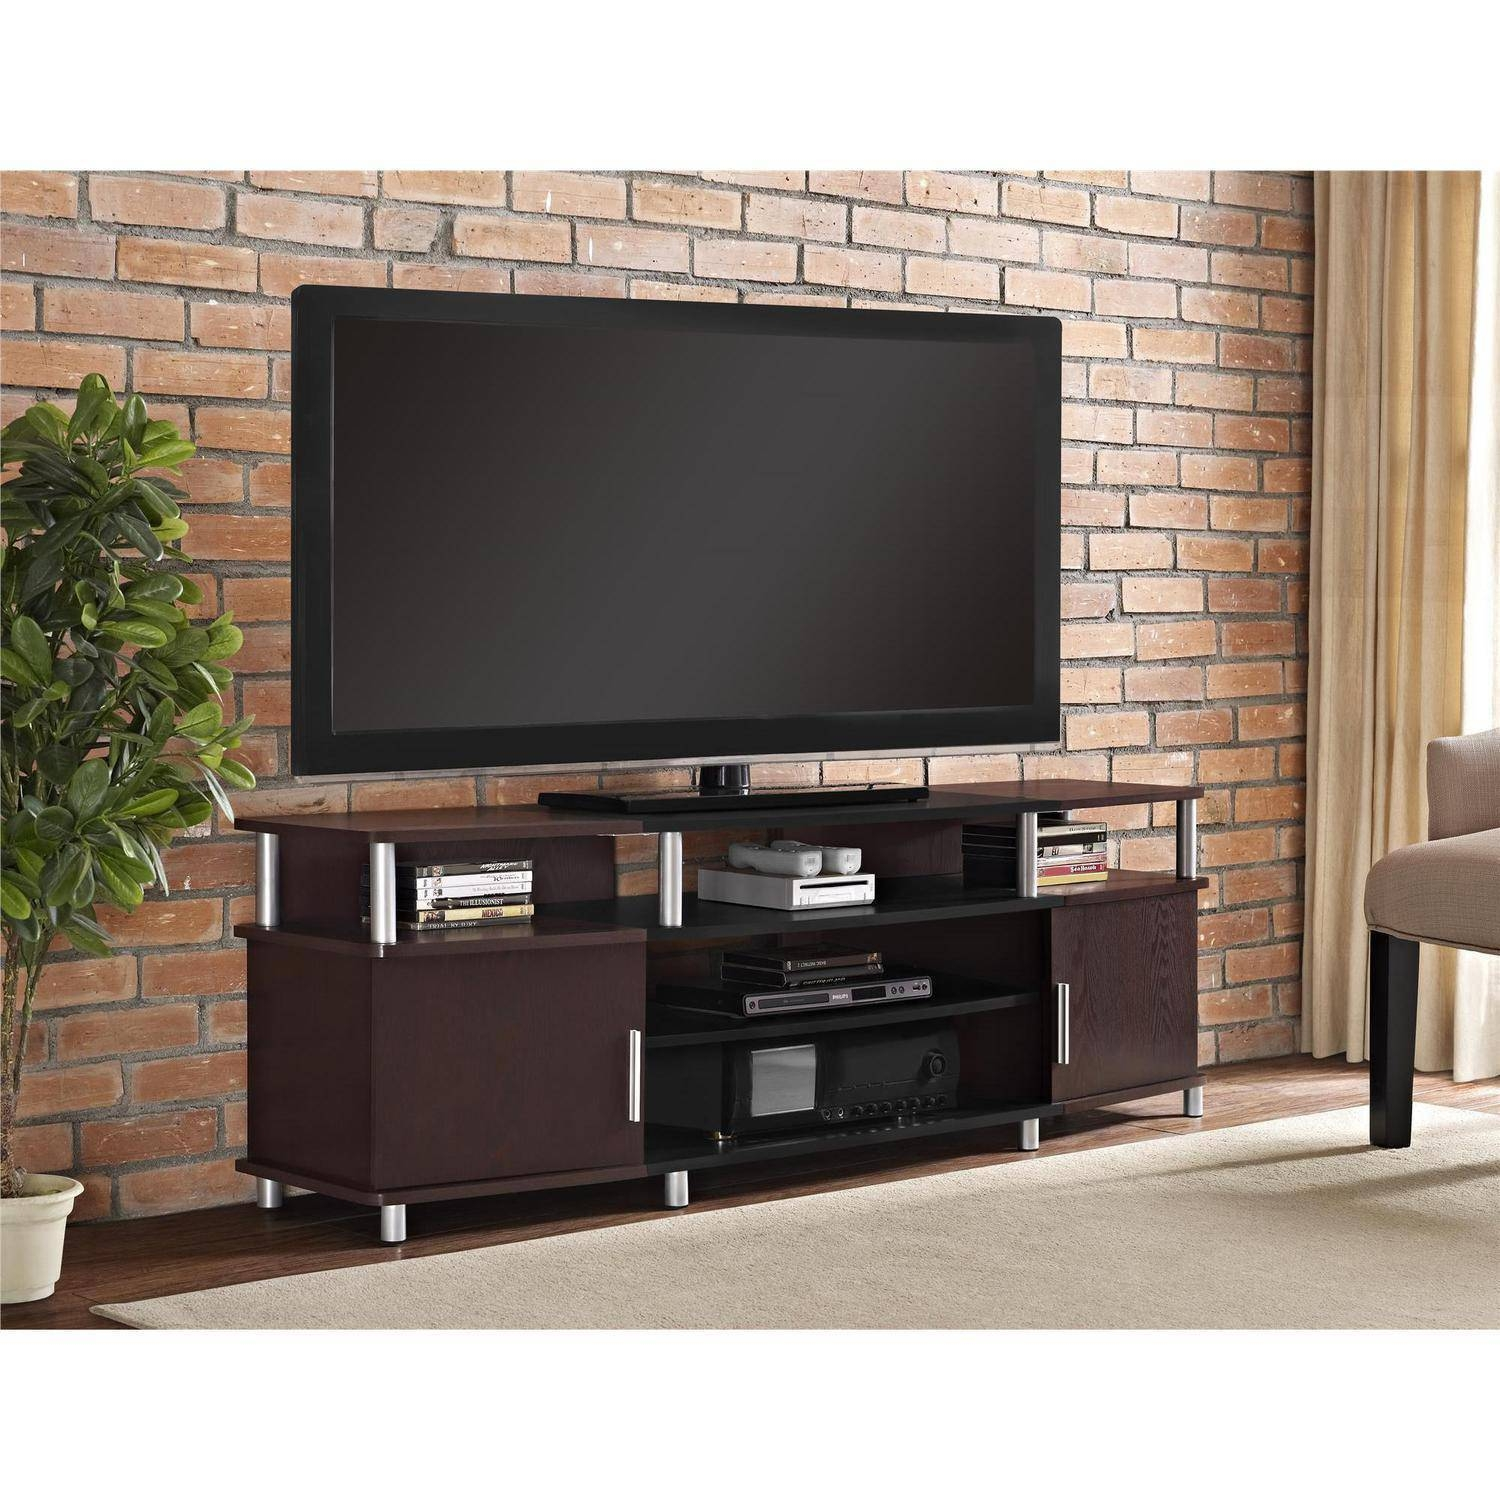 """Carson Tv Stand For Tvs Up To 70"""" Wide, Cherry - Walmart with Cherry Wood Tv Cabinets (Image 2 of 15)"""